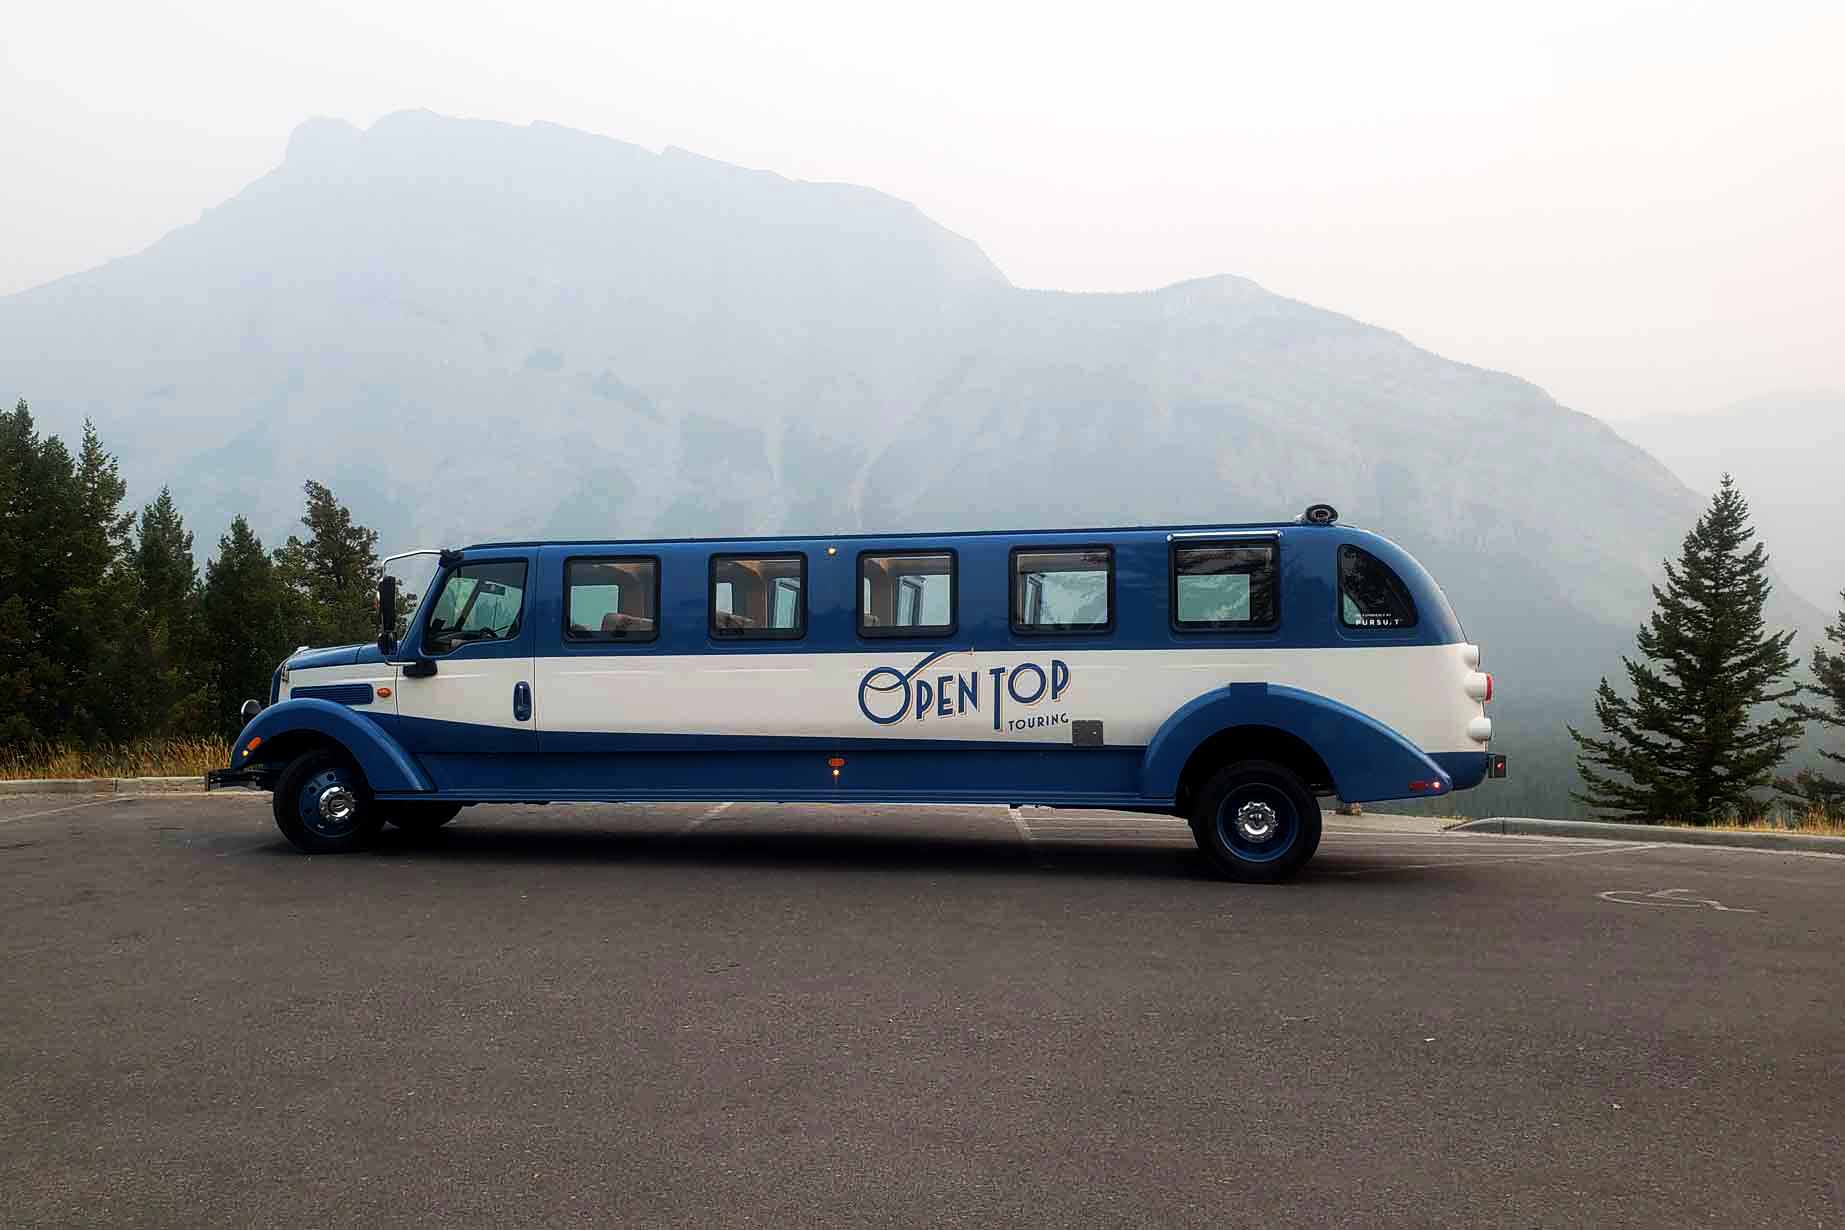 Open Top Touring bus in front of Mount Rundle at the Tunnel Mountain scenic lookout